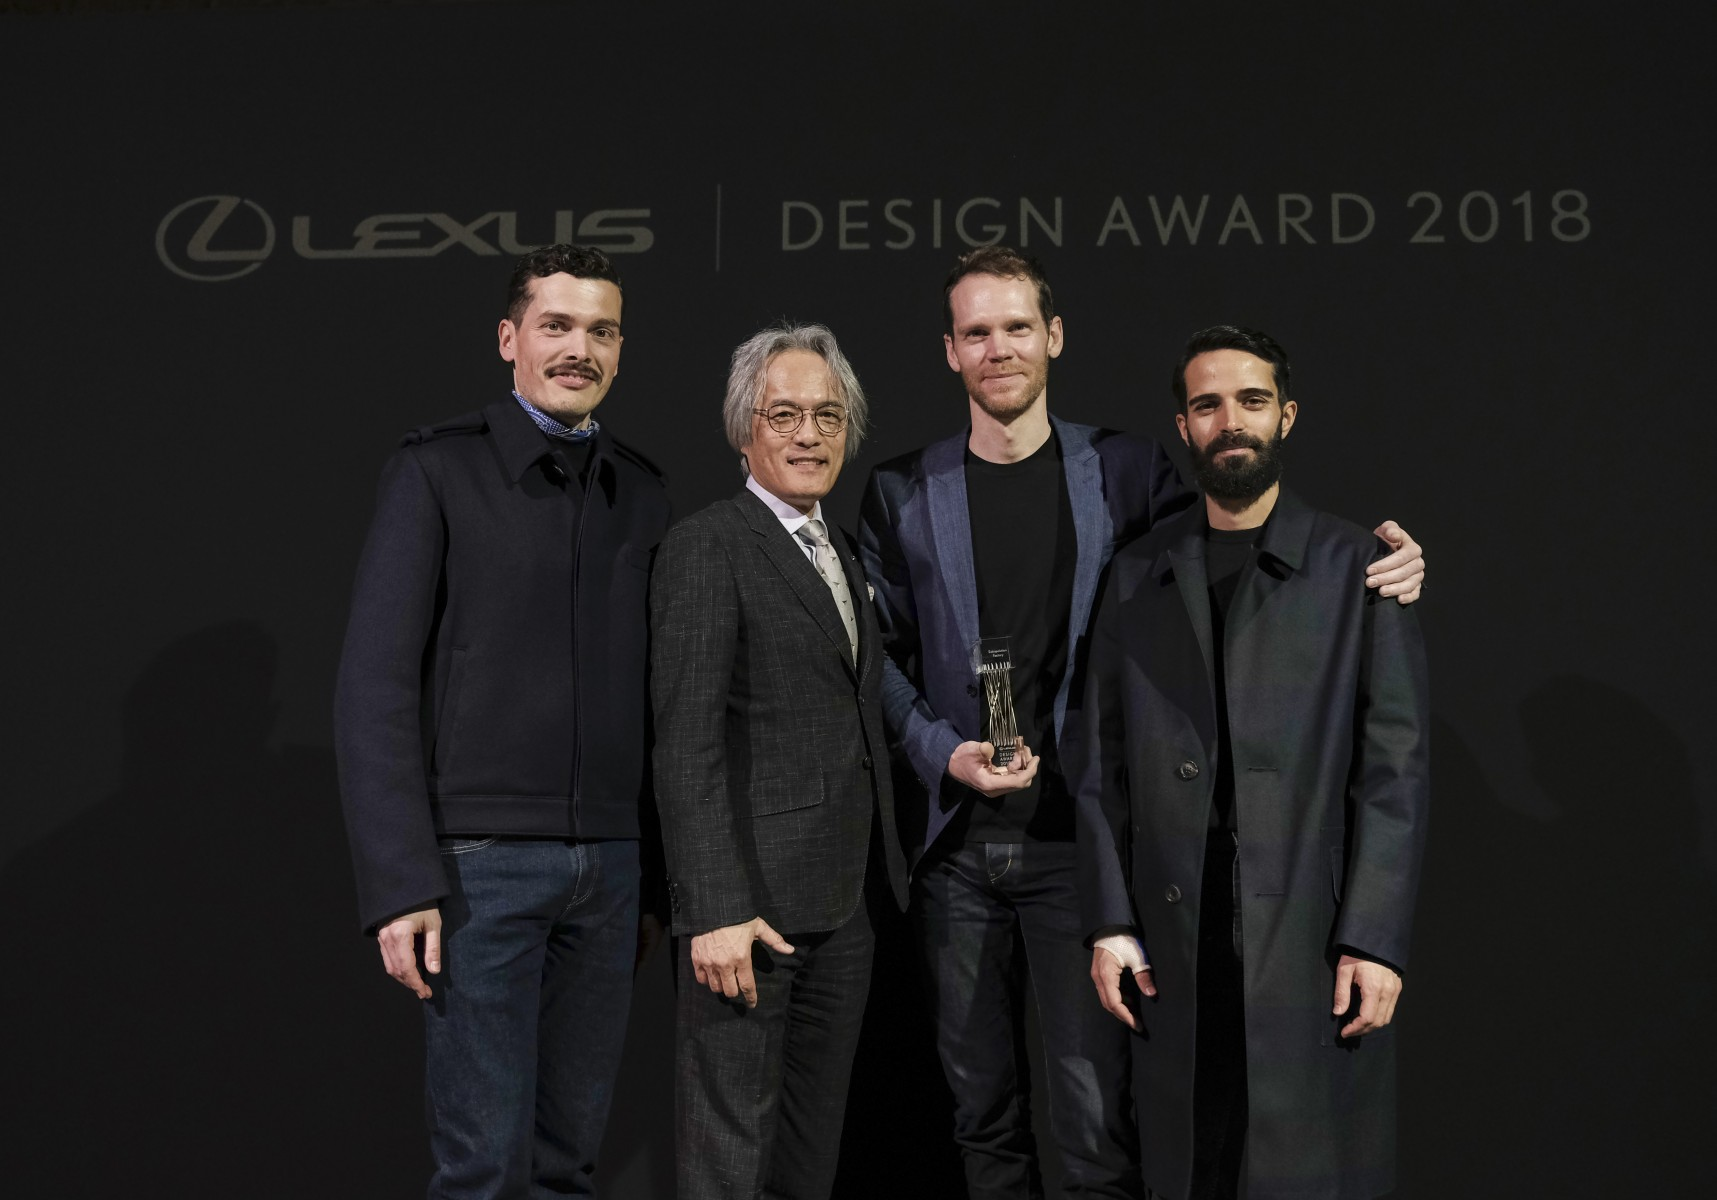 LEXUS DESIGN AWARD 2018 GRAND PRIX ANNOUNCEMENT